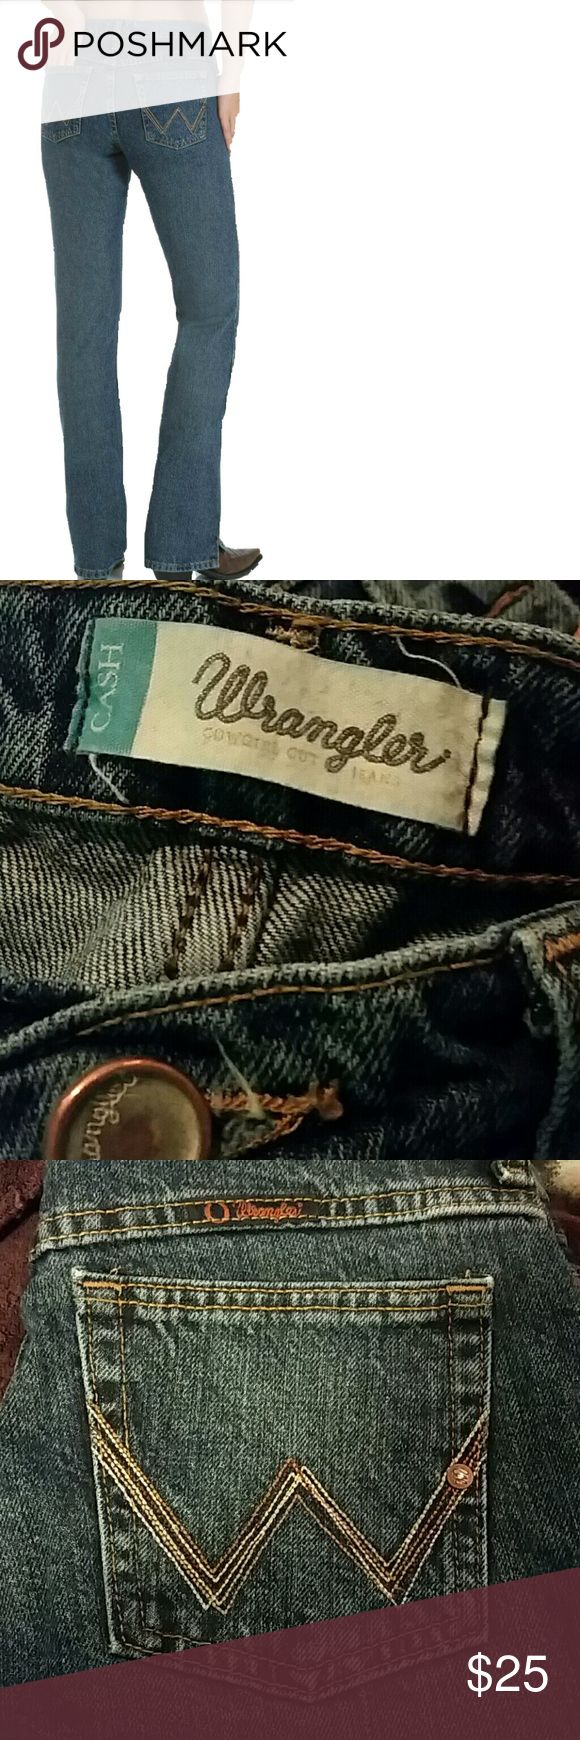 Wrangler Cash Jeans Ladies Wrangler Cash Jeans size 3/4 with 34 inch inseam have only been worn once and in excellent condition. I bought them online, they're just too small for me. They're very durable and look great :) Don't hesitate to offer, I'm cleaning out my jean drawer and these have to go! I'll be reasonable with offers. Wrangler Jeans Boot Cut